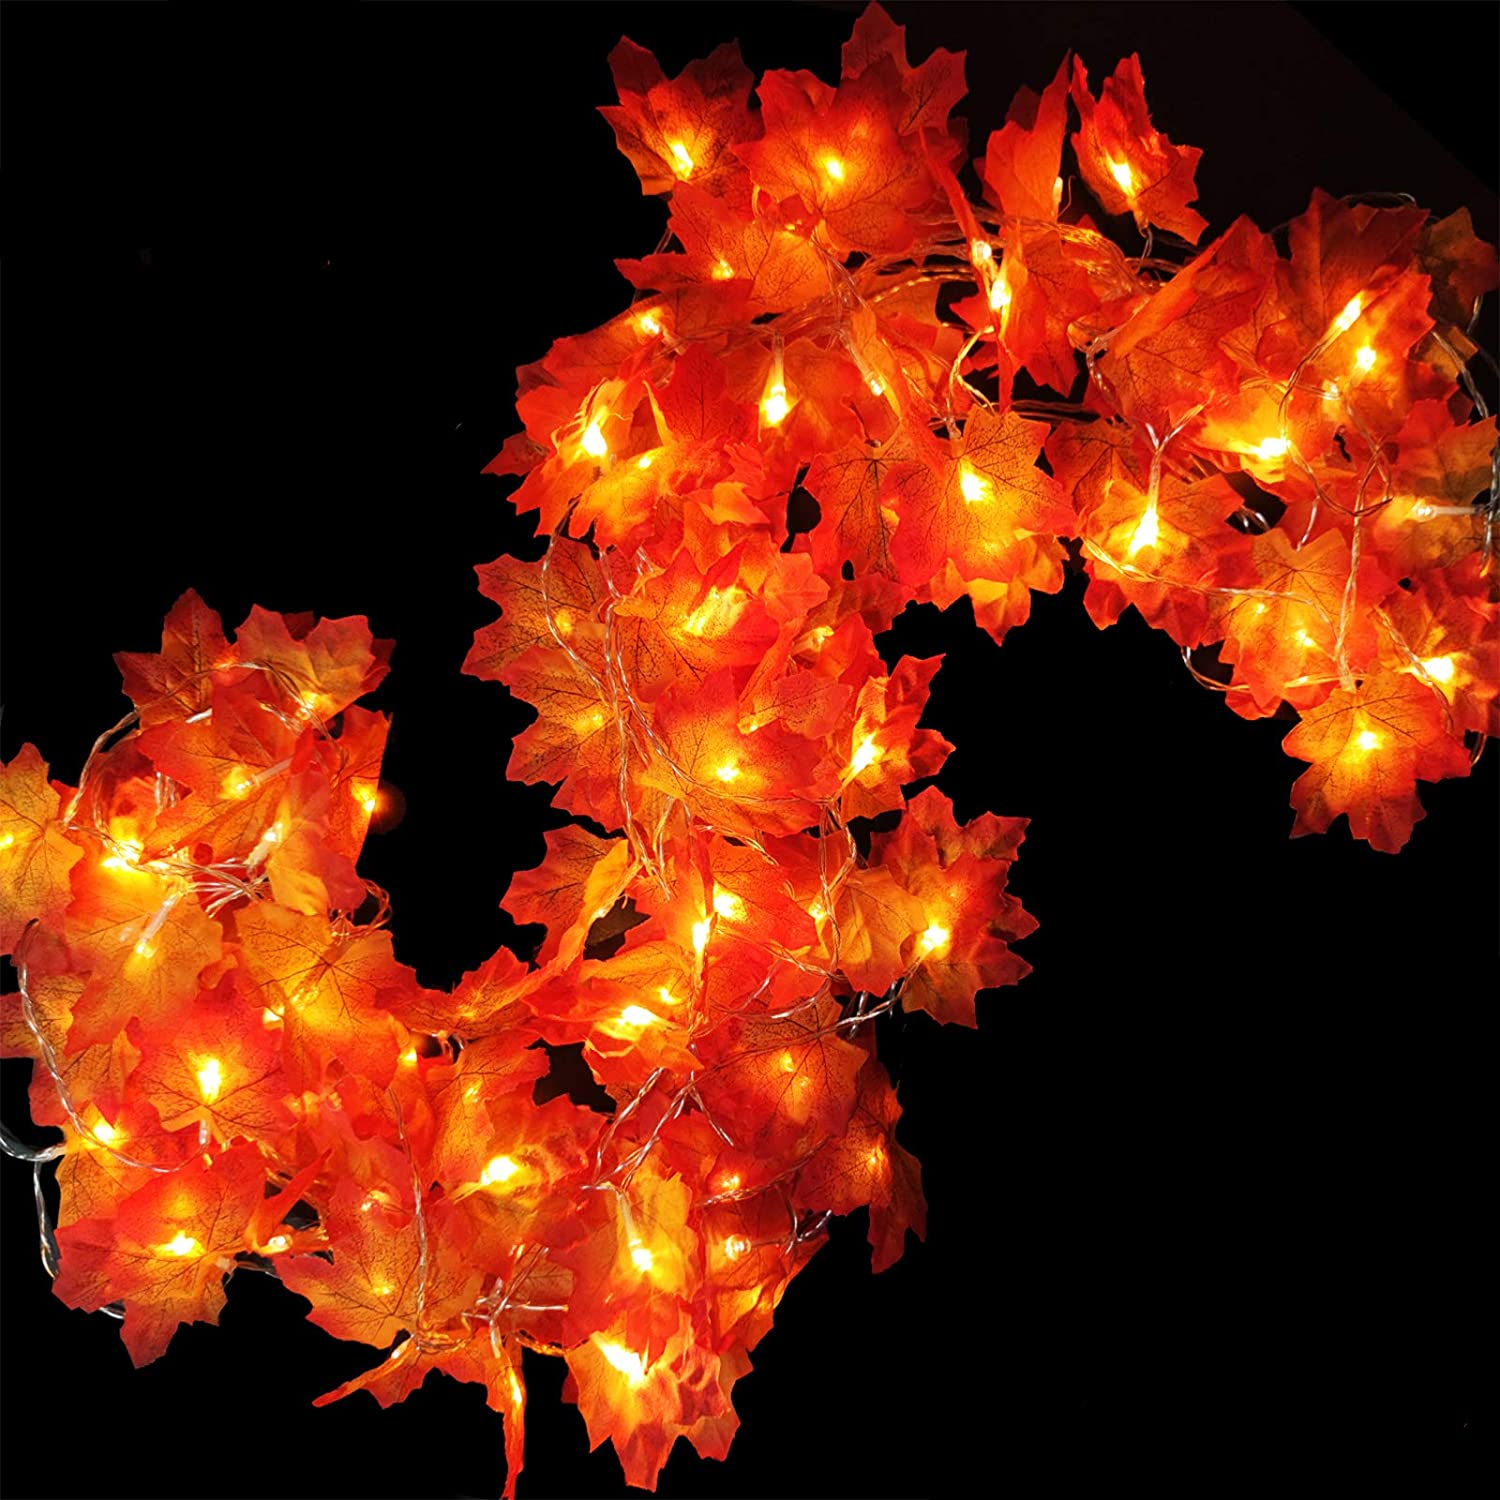 iGeeKid Maple Leaves Lighted Fall Garland 40LED 16.4FT String Lights Battery Operated Fall Halloween Thanksgivings Autumns Decorations for Home Party Indoor Outdoor (Warm White)